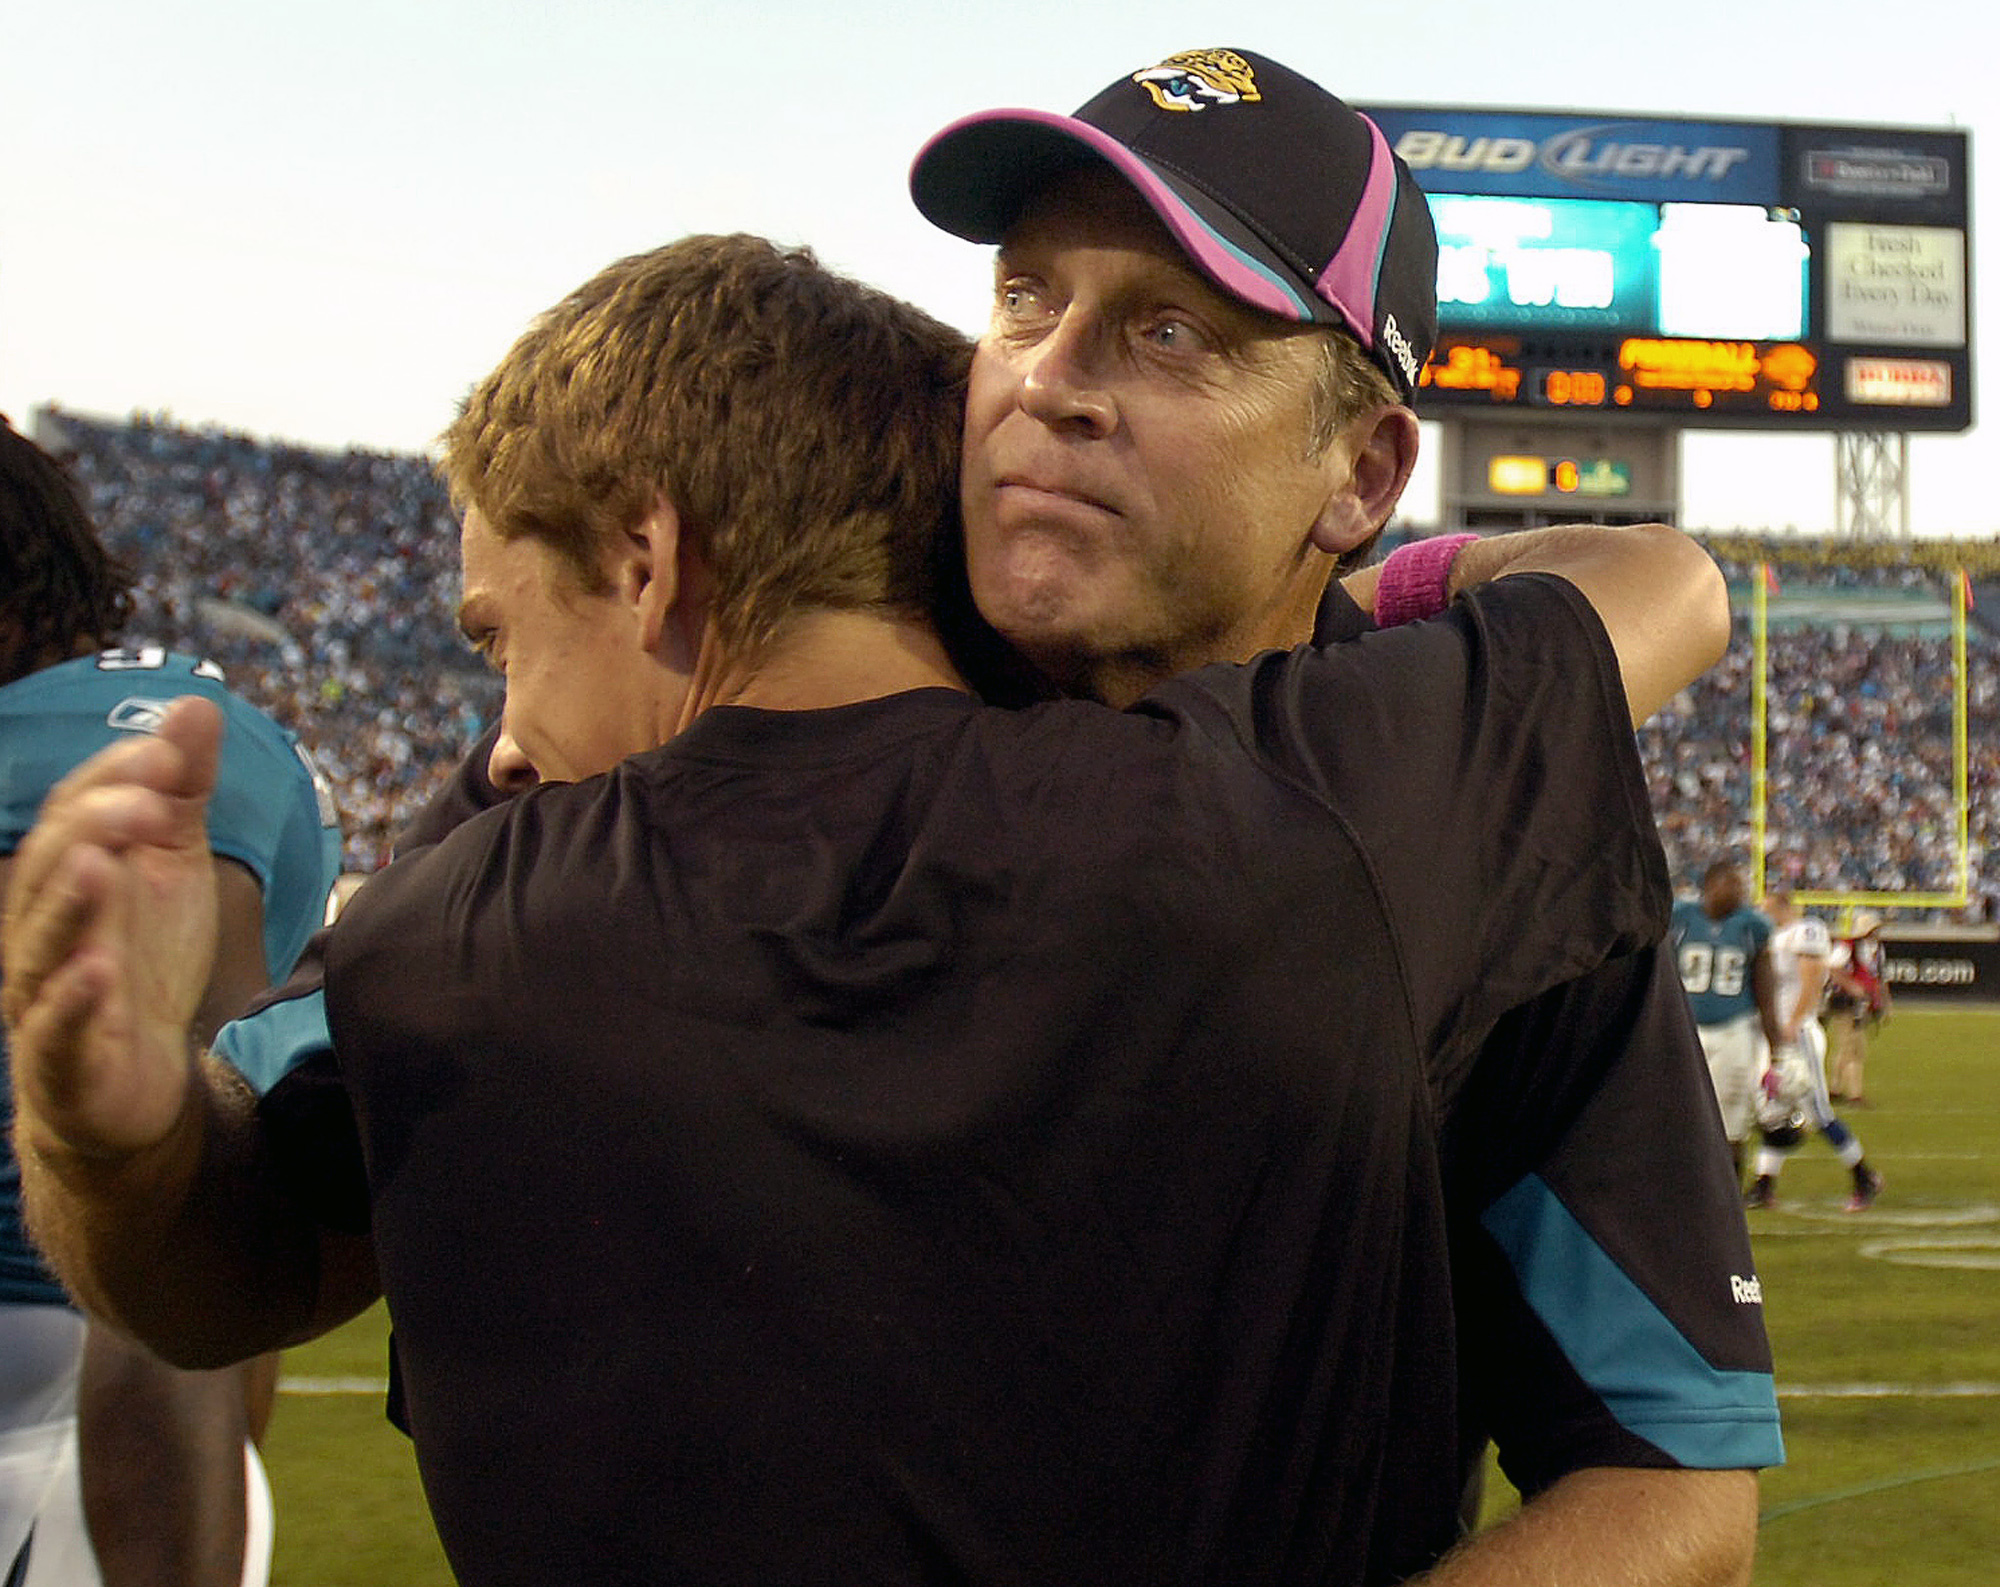 Jacksonville Jaguars head coach Jack Del Rio , right, hugs his son Luke Del Rio after defeating the Indianapolis Colts with a last-second field goal during an NFL football game, Sunday, Oct. 3, 2010, in Jacksonville, Fla. Luke Del Rio will return to Jacks